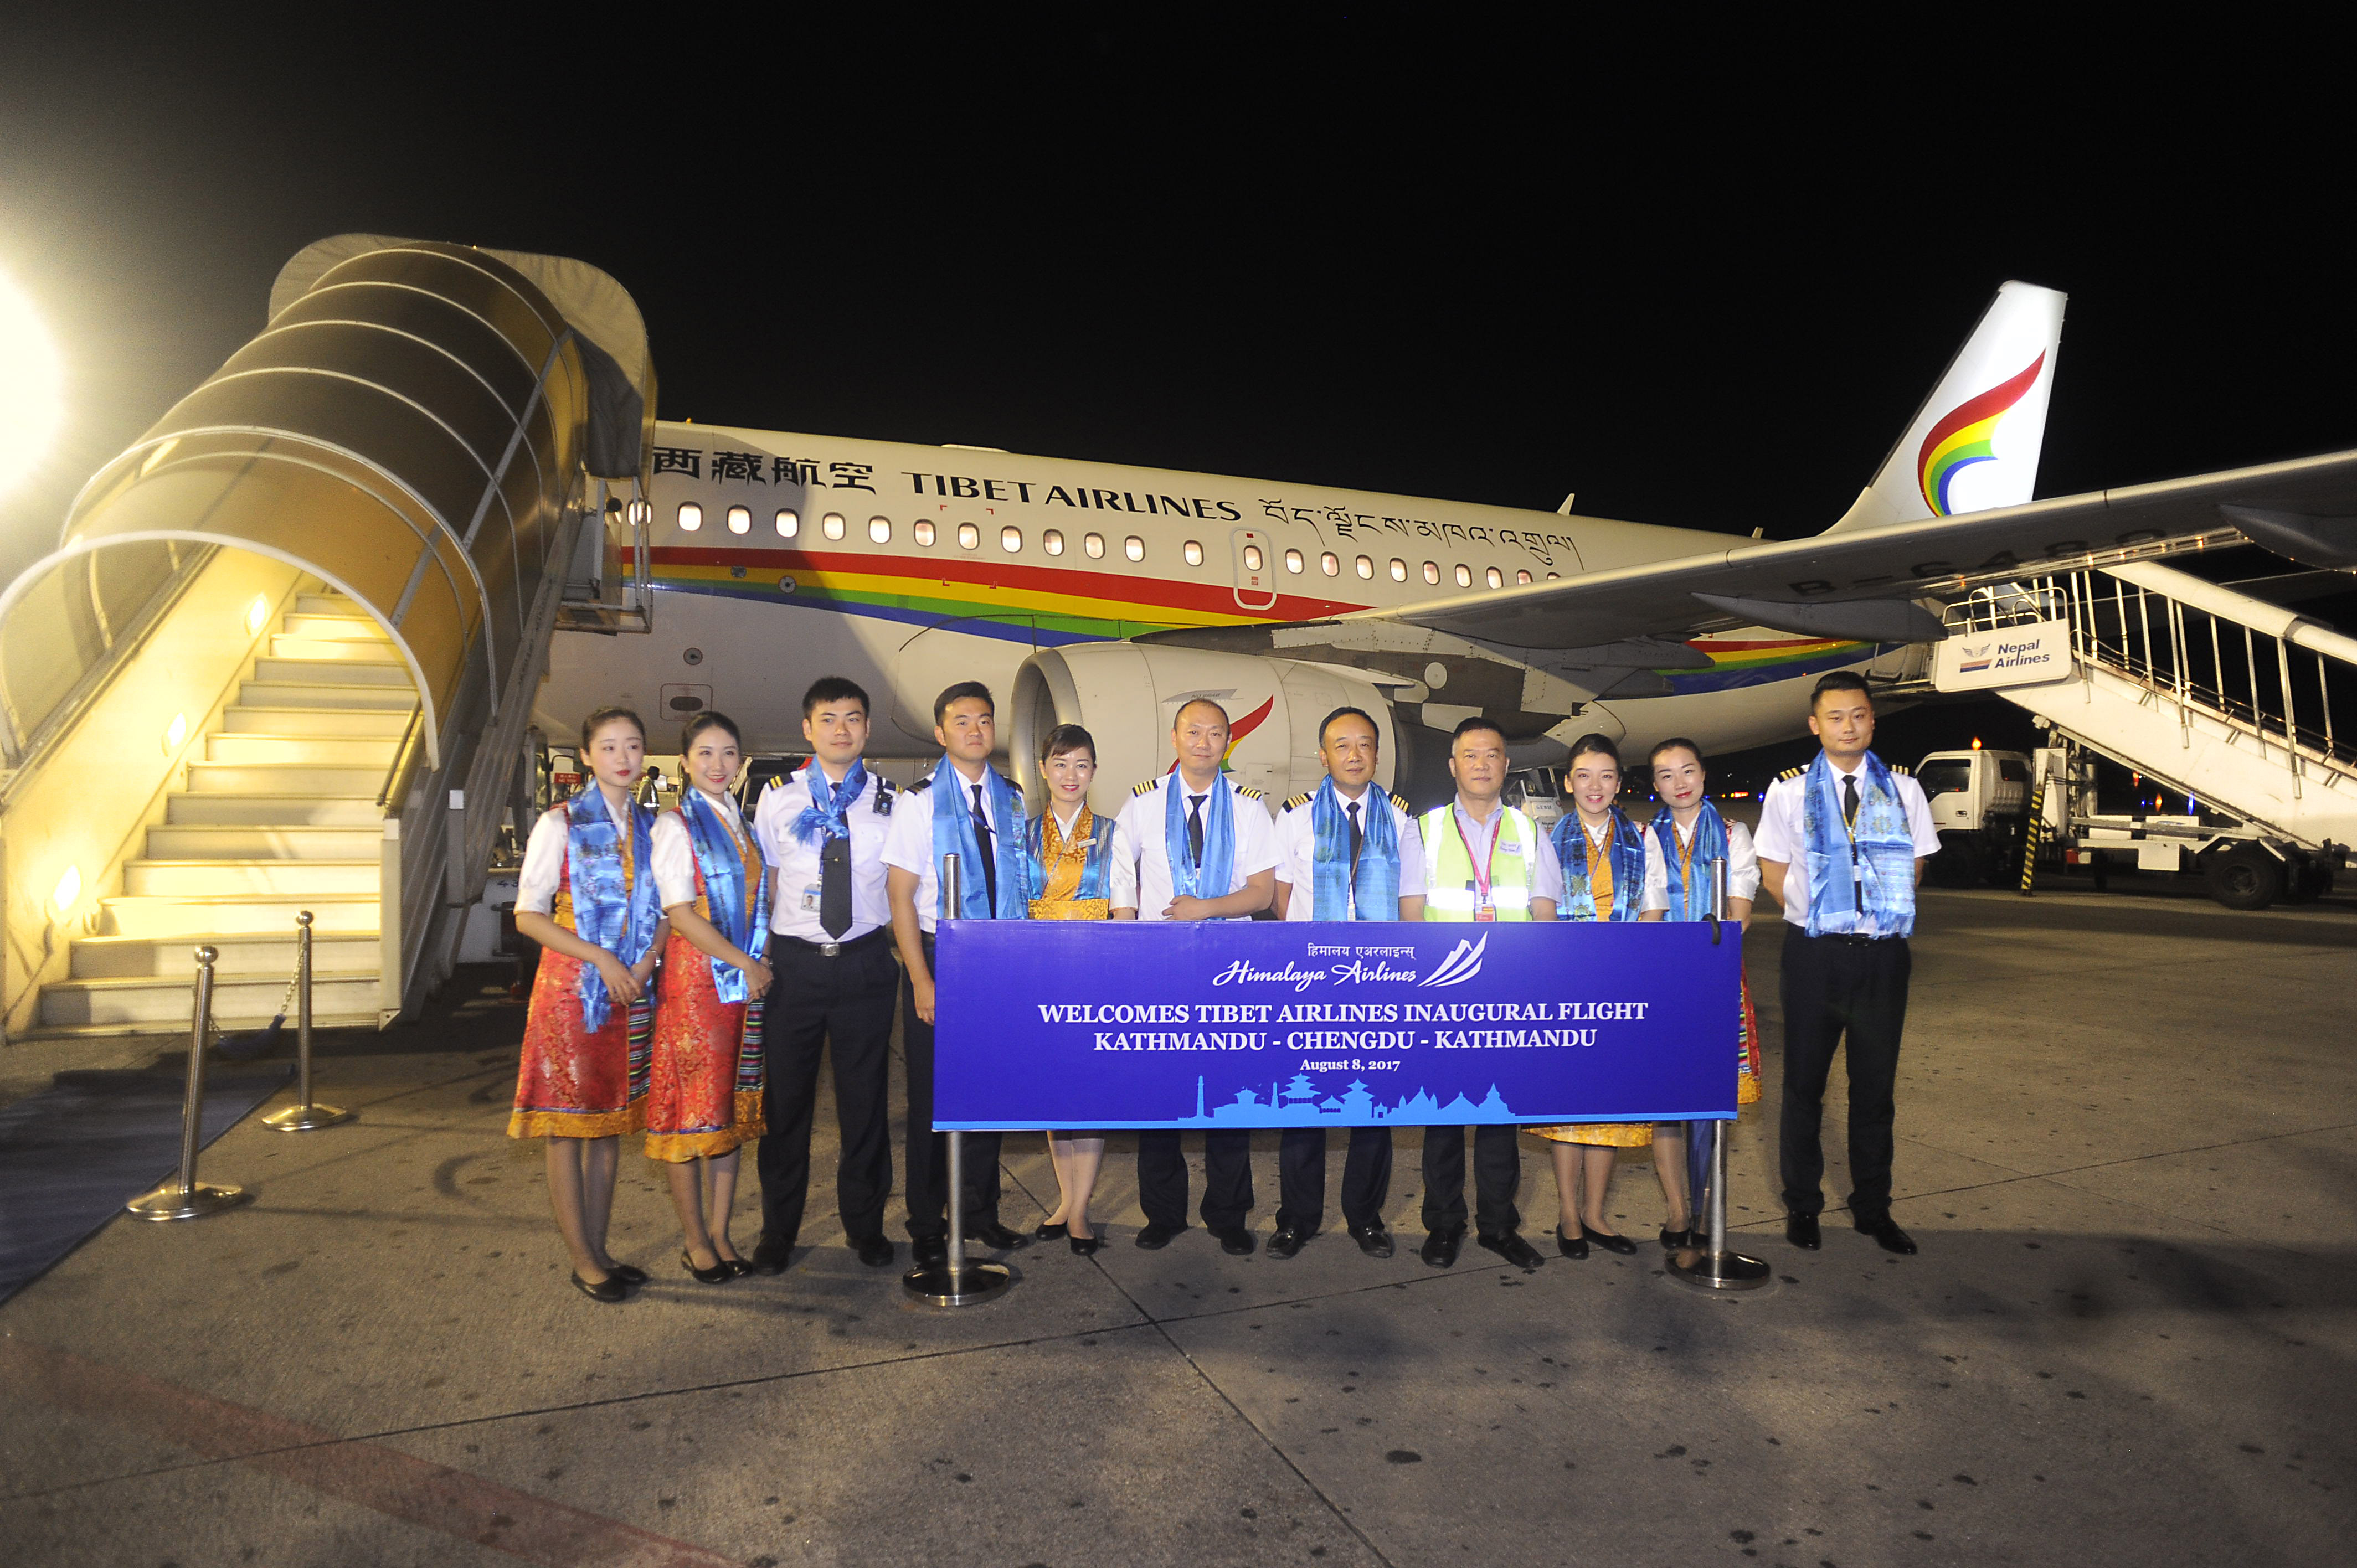 Himalaya Airliness welcome Tibet Airlines-aviationnepal.com